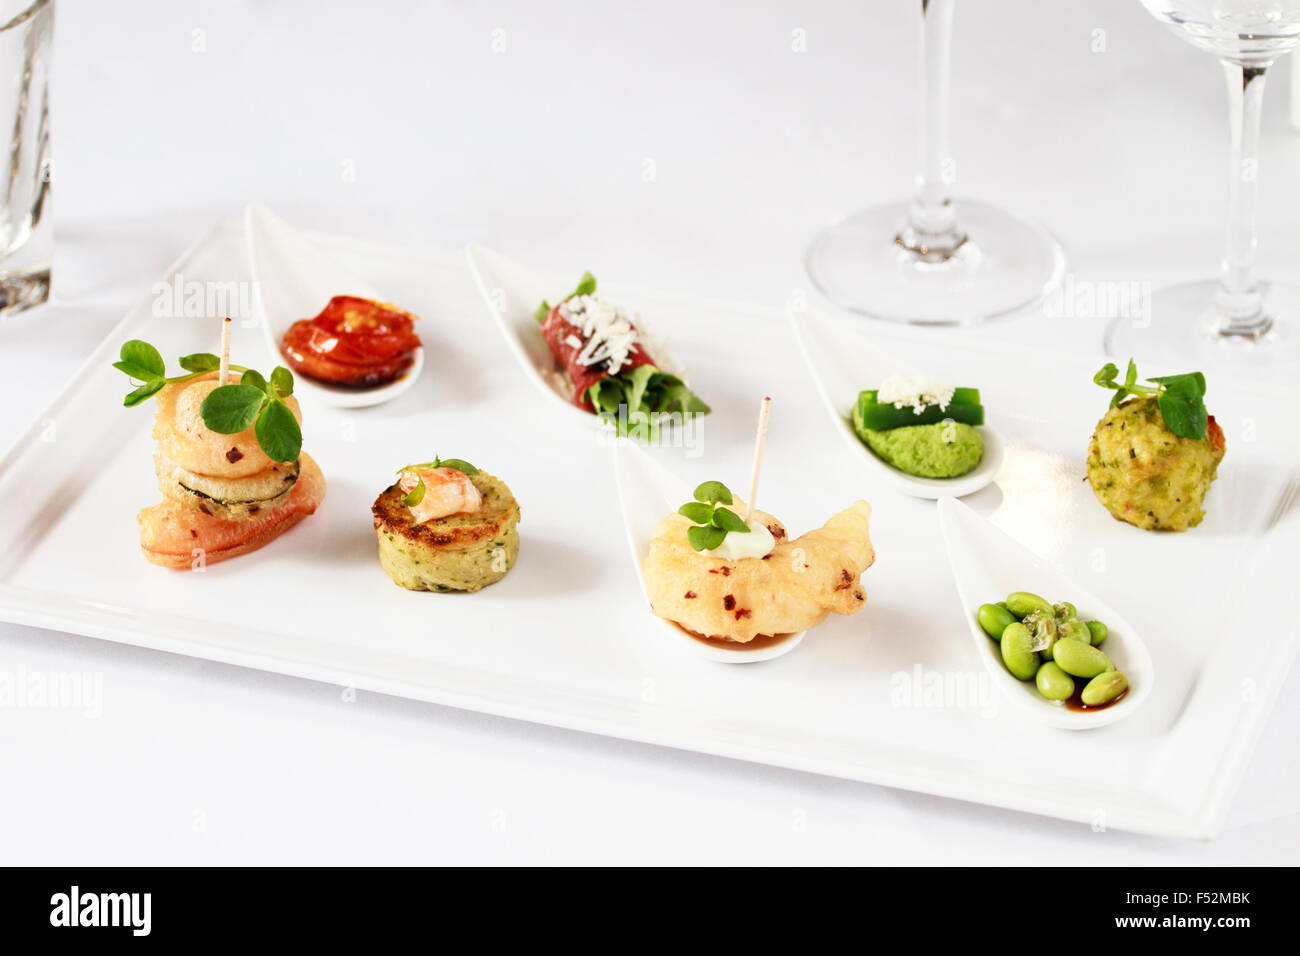 A platter with a selection of Canapes on white - Stock Image